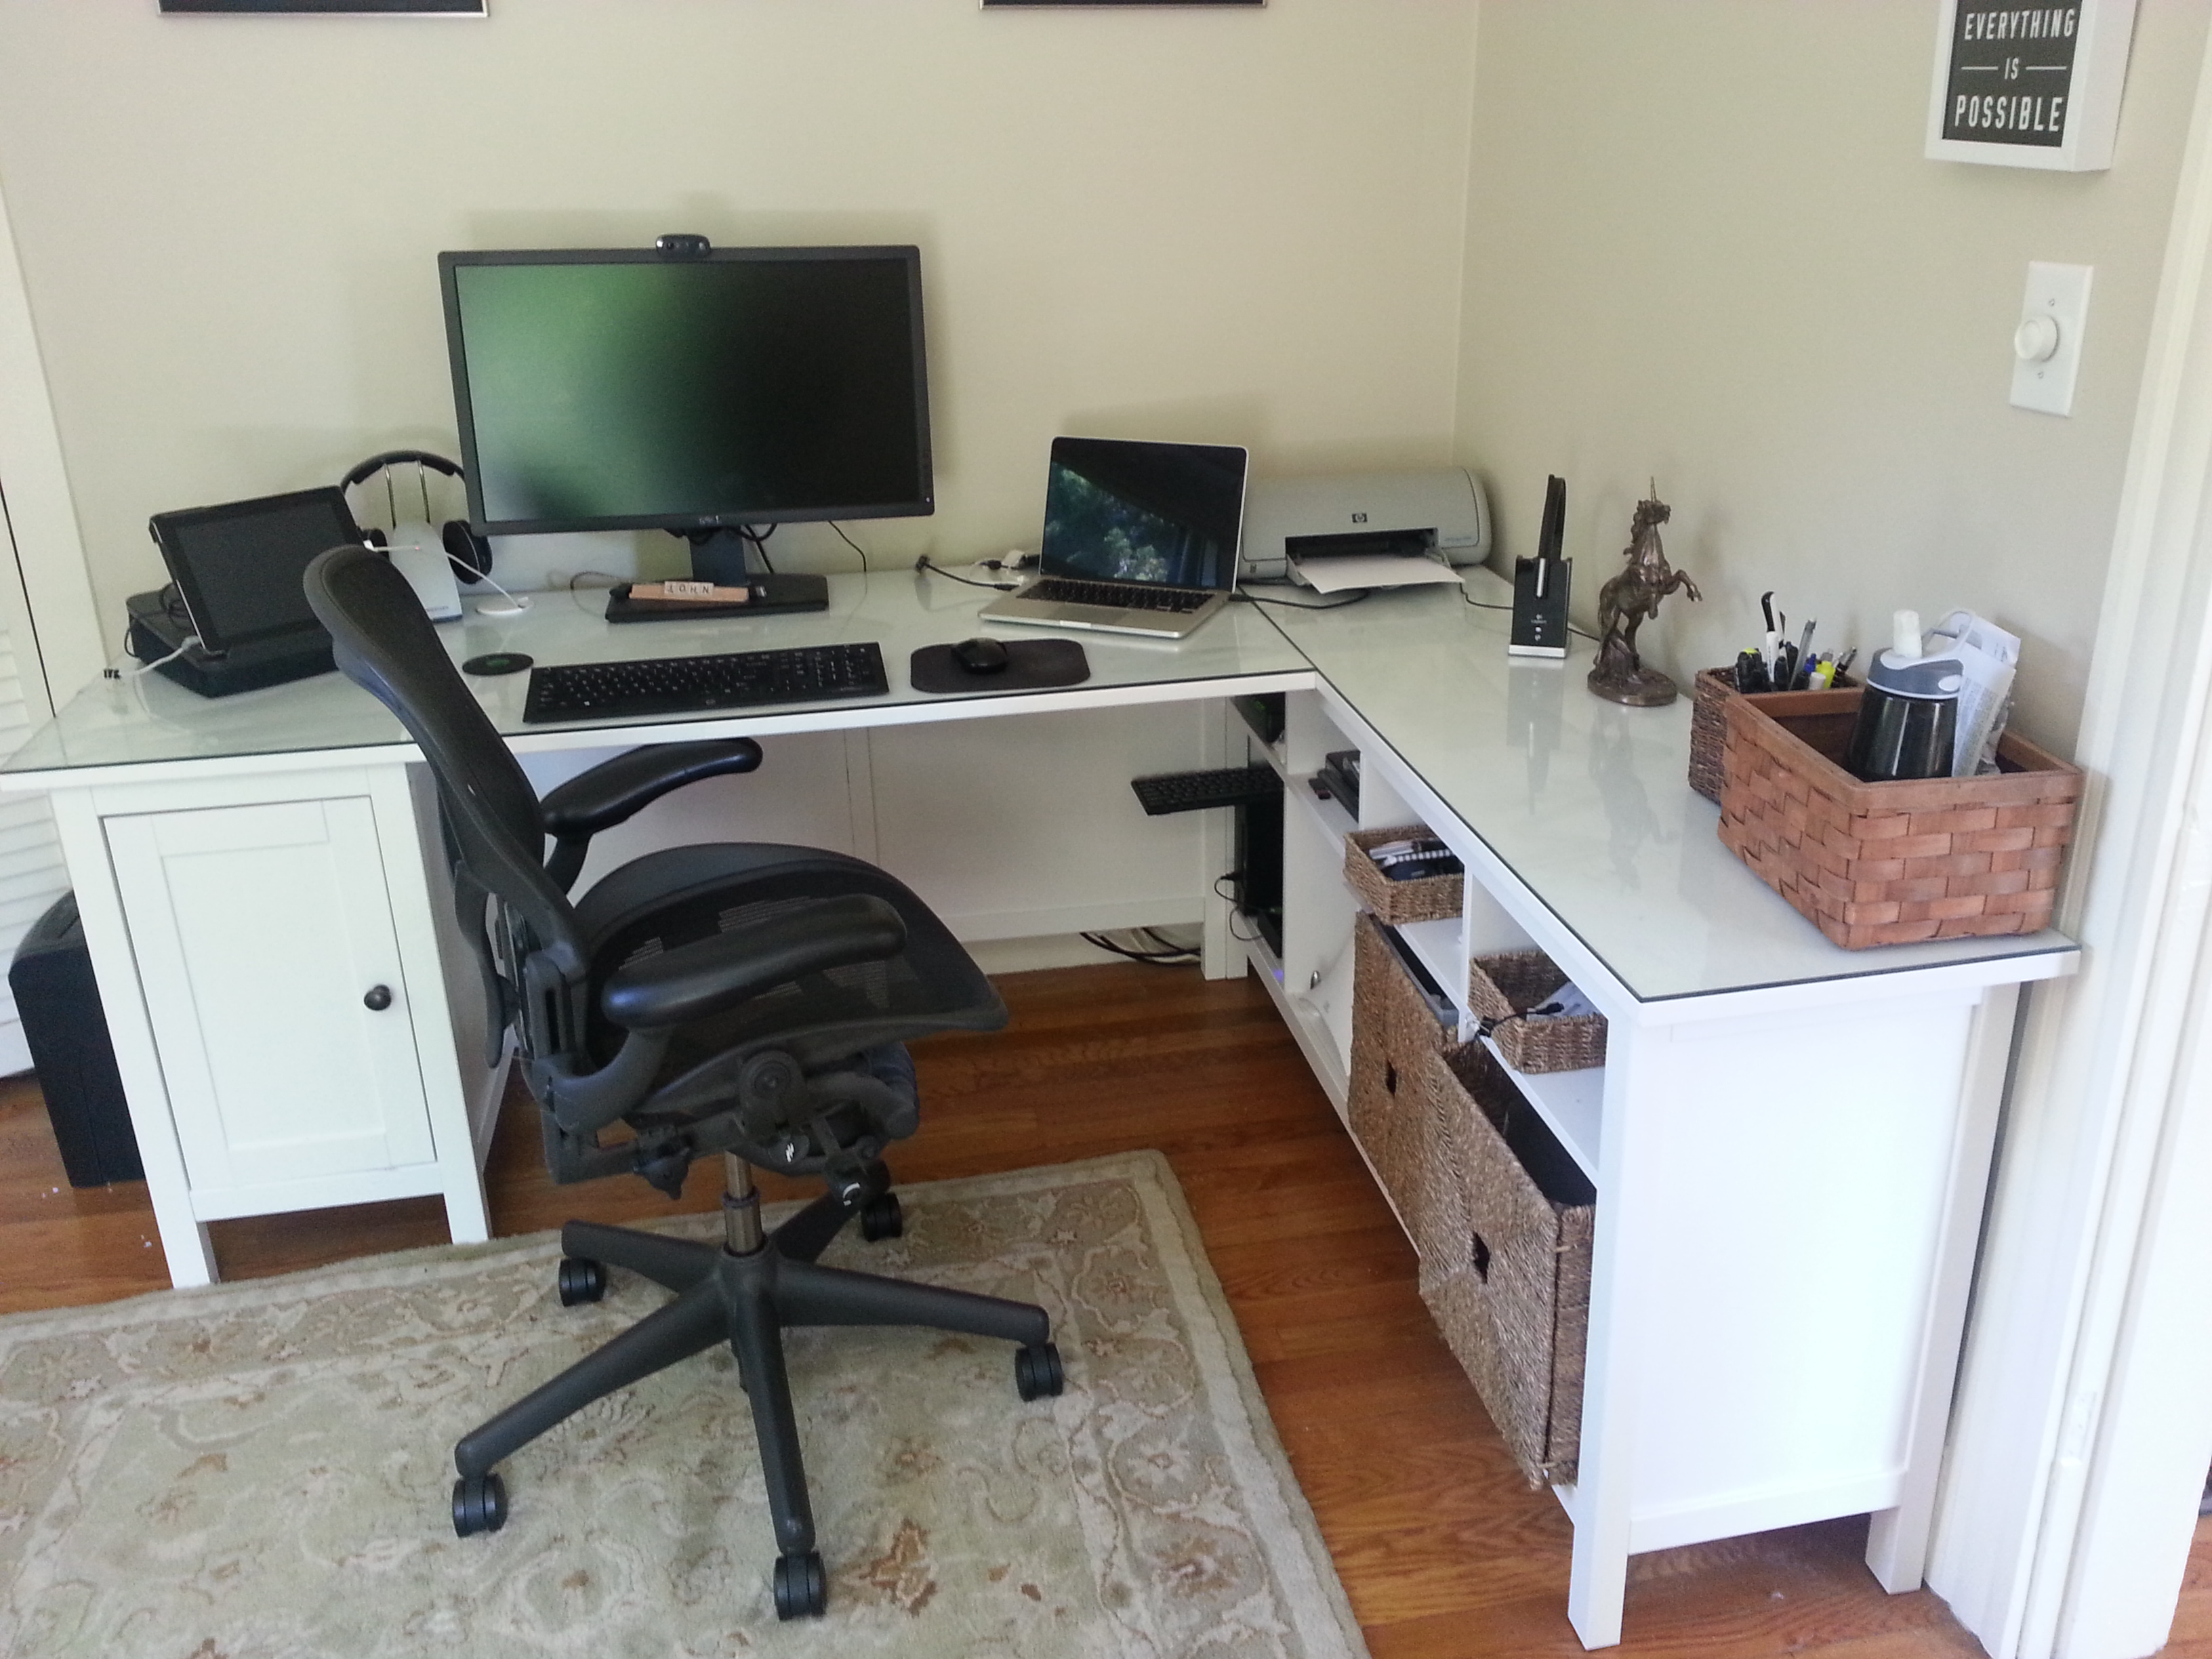 Home Office Ikea Hack   Open Parenthesis Hemnes desk minus one pedestal  plus Hemnes sofa table  plus glass top